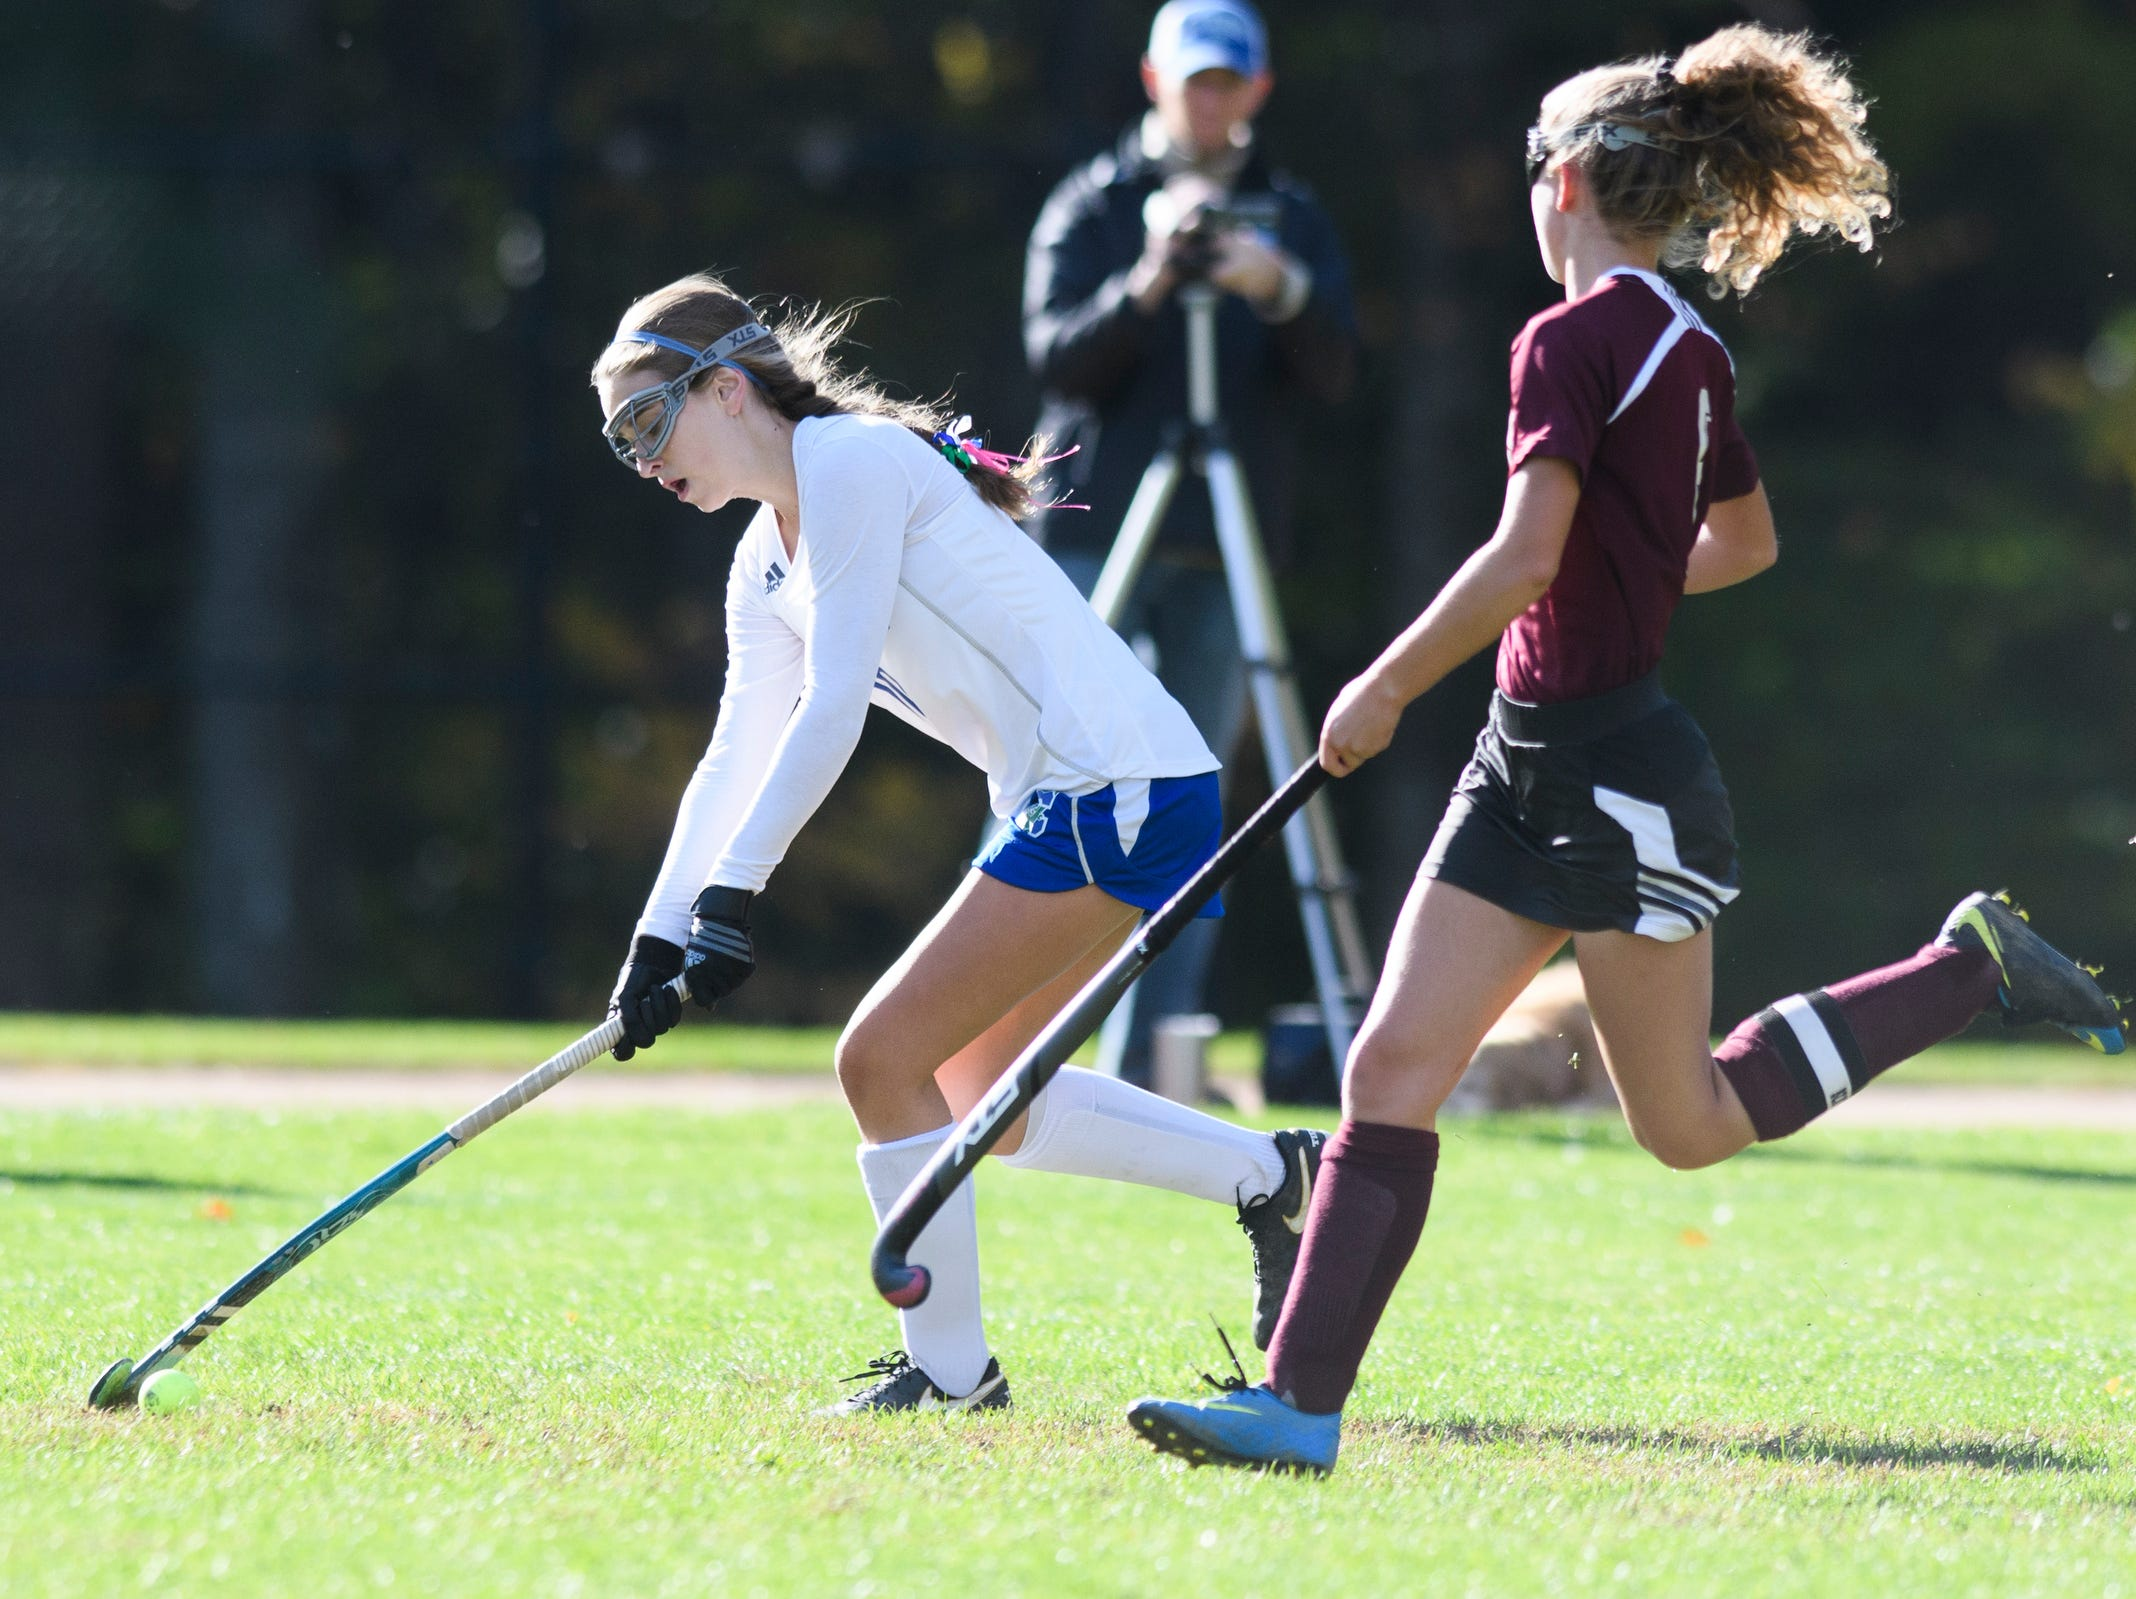 Colchester's Hannah Carroll (10) runs down the field with the ball during the field hockey game between Mount Abraham and Colchester at Colchester High School on Saturday morning October 20, 2018 in Colchester.